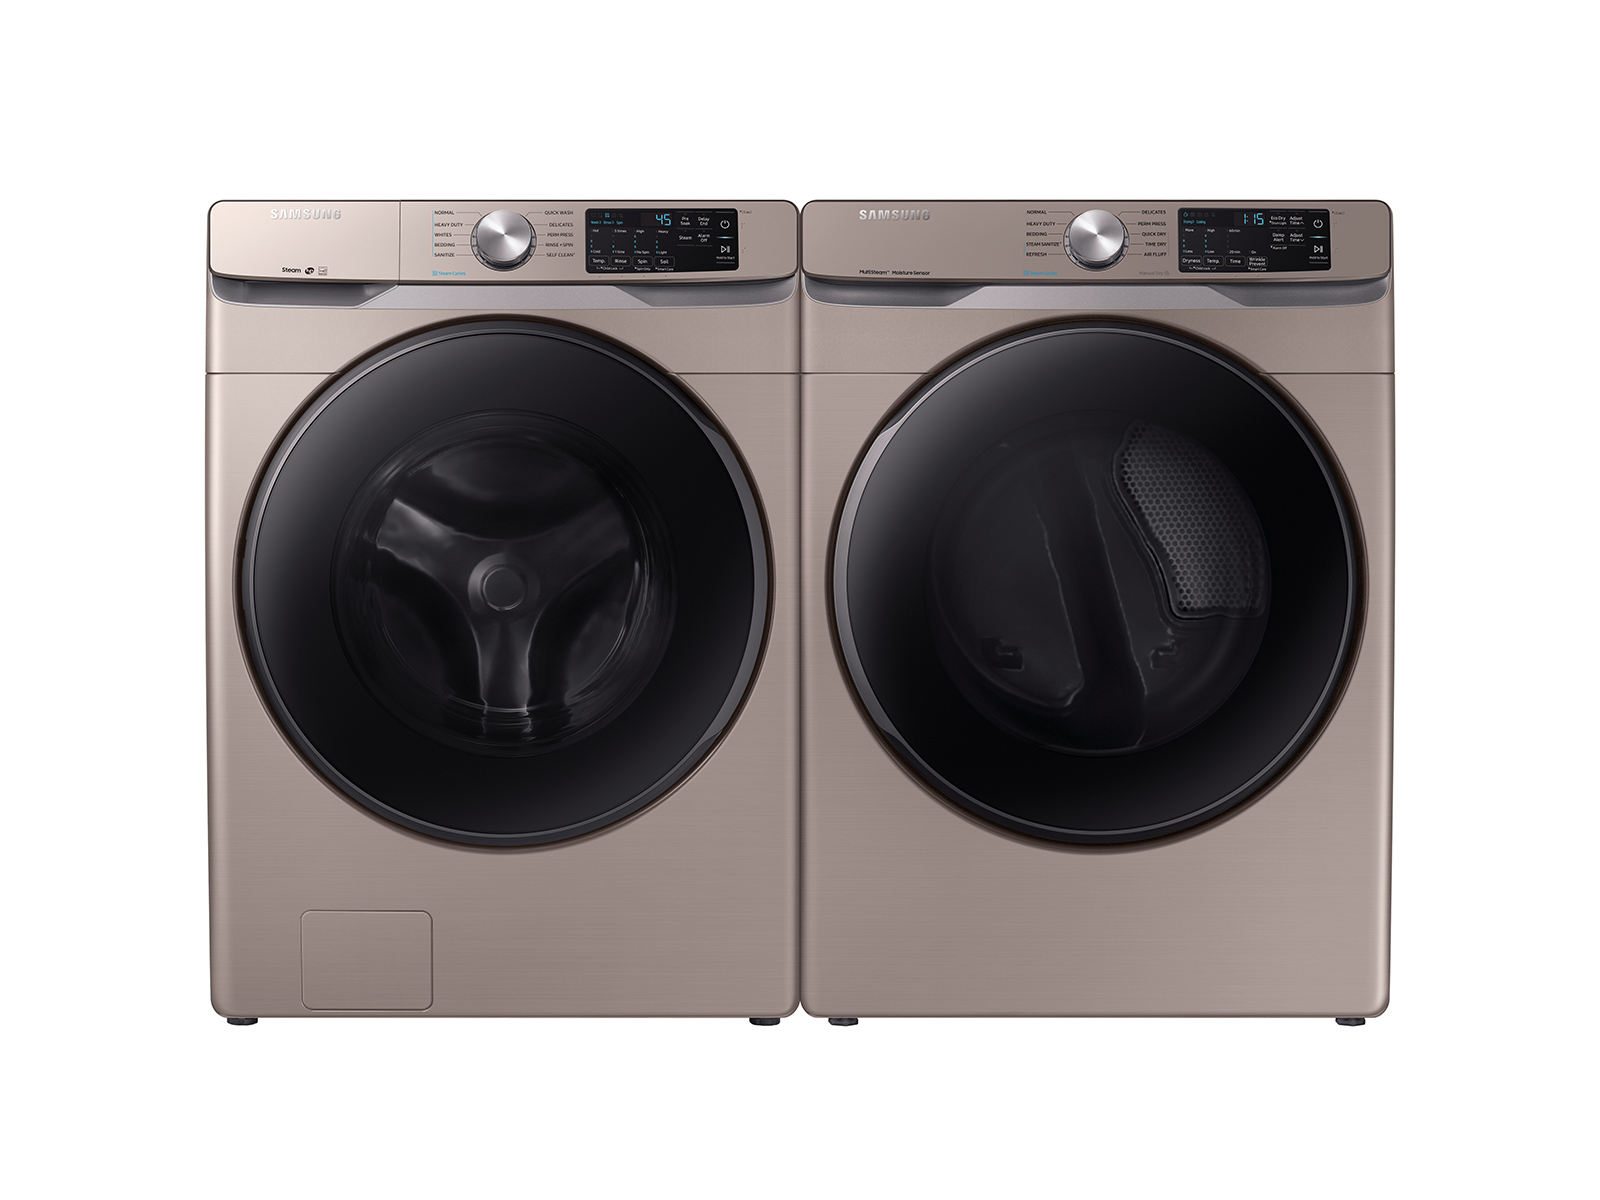 Samsung Front Load Washer & Dryer Set with Steam and Steam Sanitize+ in Champagne(BNDL-1579764797389) - Laundry Washing Machine